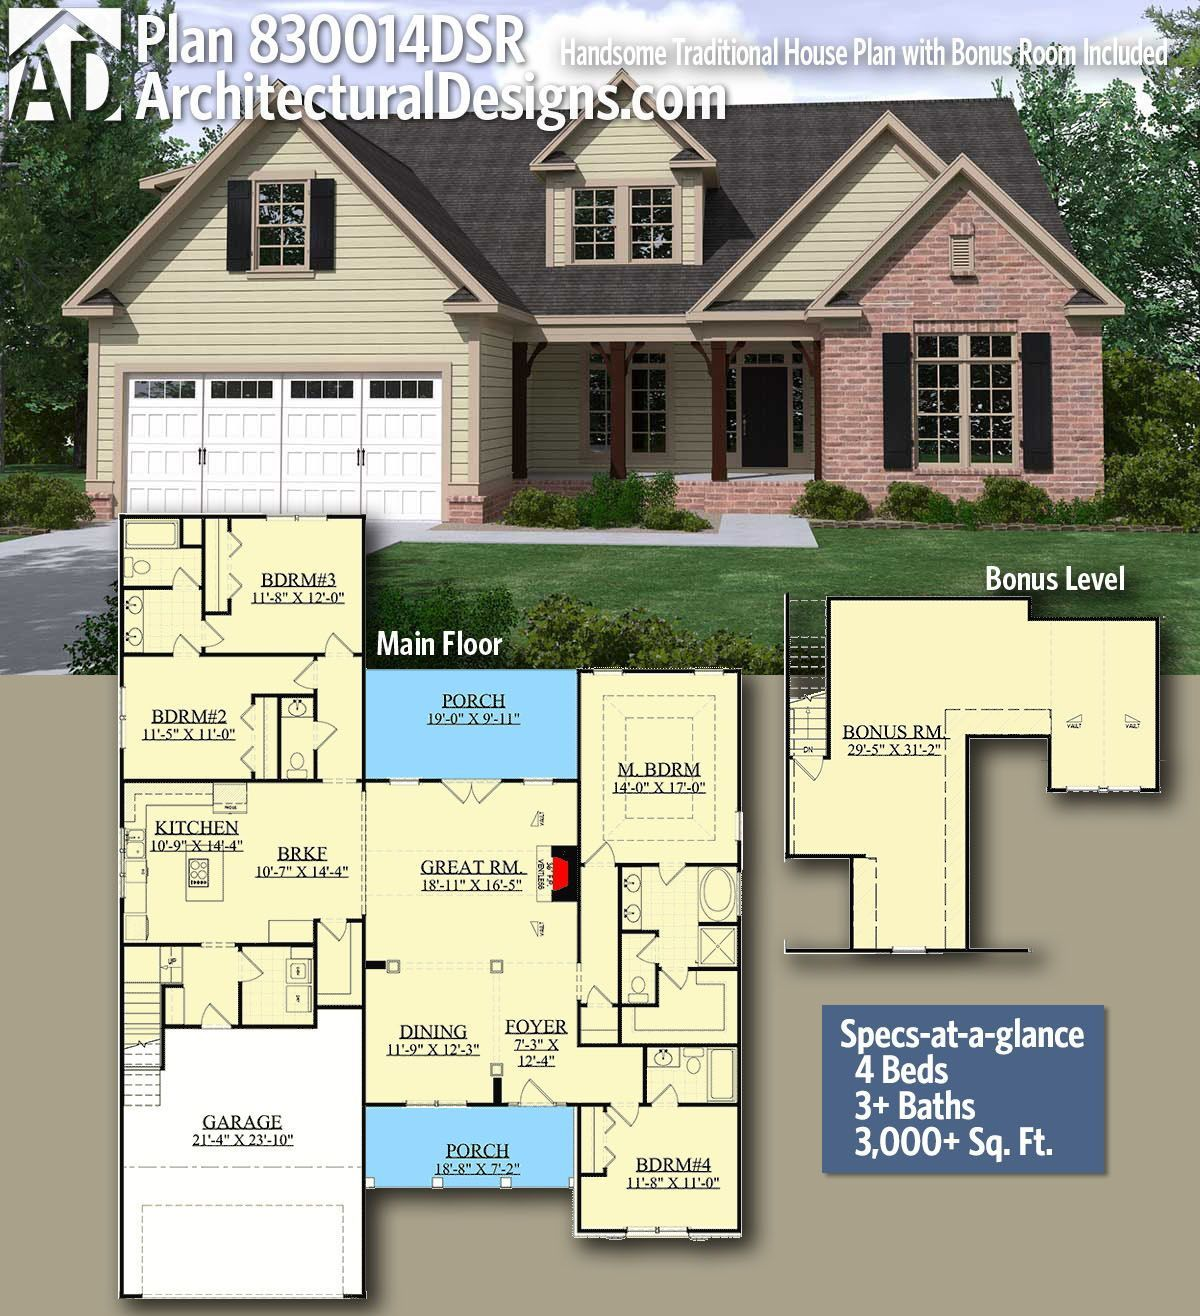 Architectural Designs Home Plan 830014dsr With 4 Bedrooms And 4 Baths In 3 000 Sq Ft With A Bonus Ov Craftsman House Plans House Plans Traditional House Plan